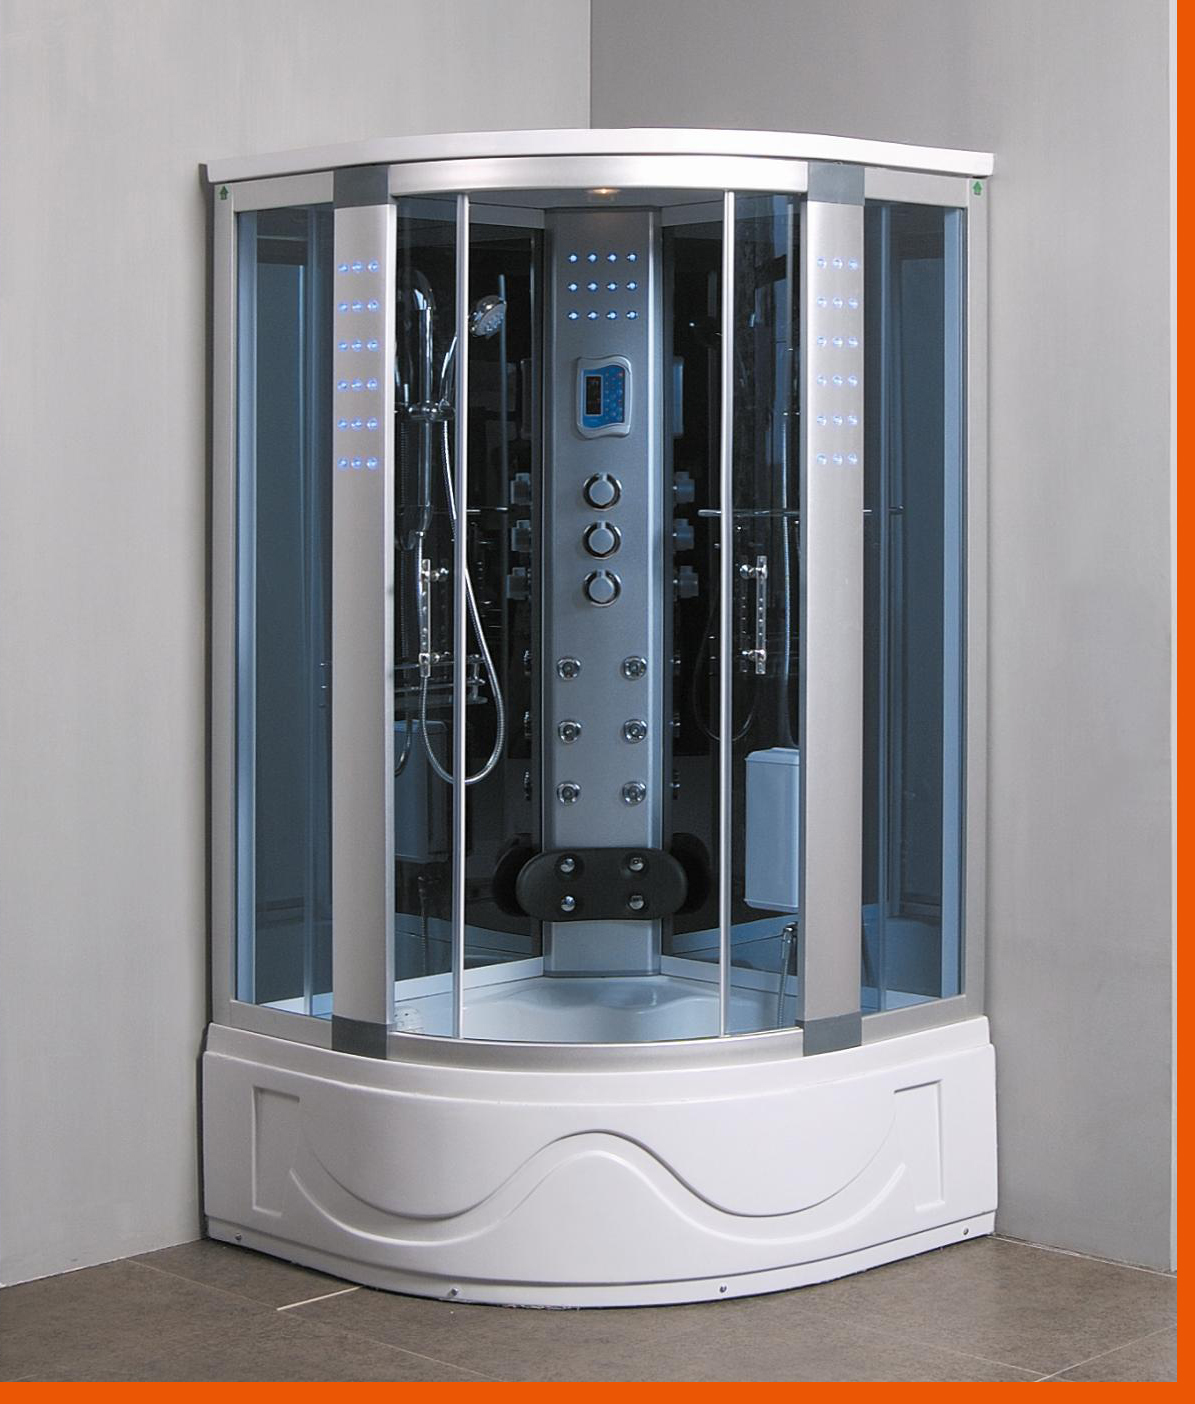 we specialize in luxury showers and baths best for bath featured products click images to see details